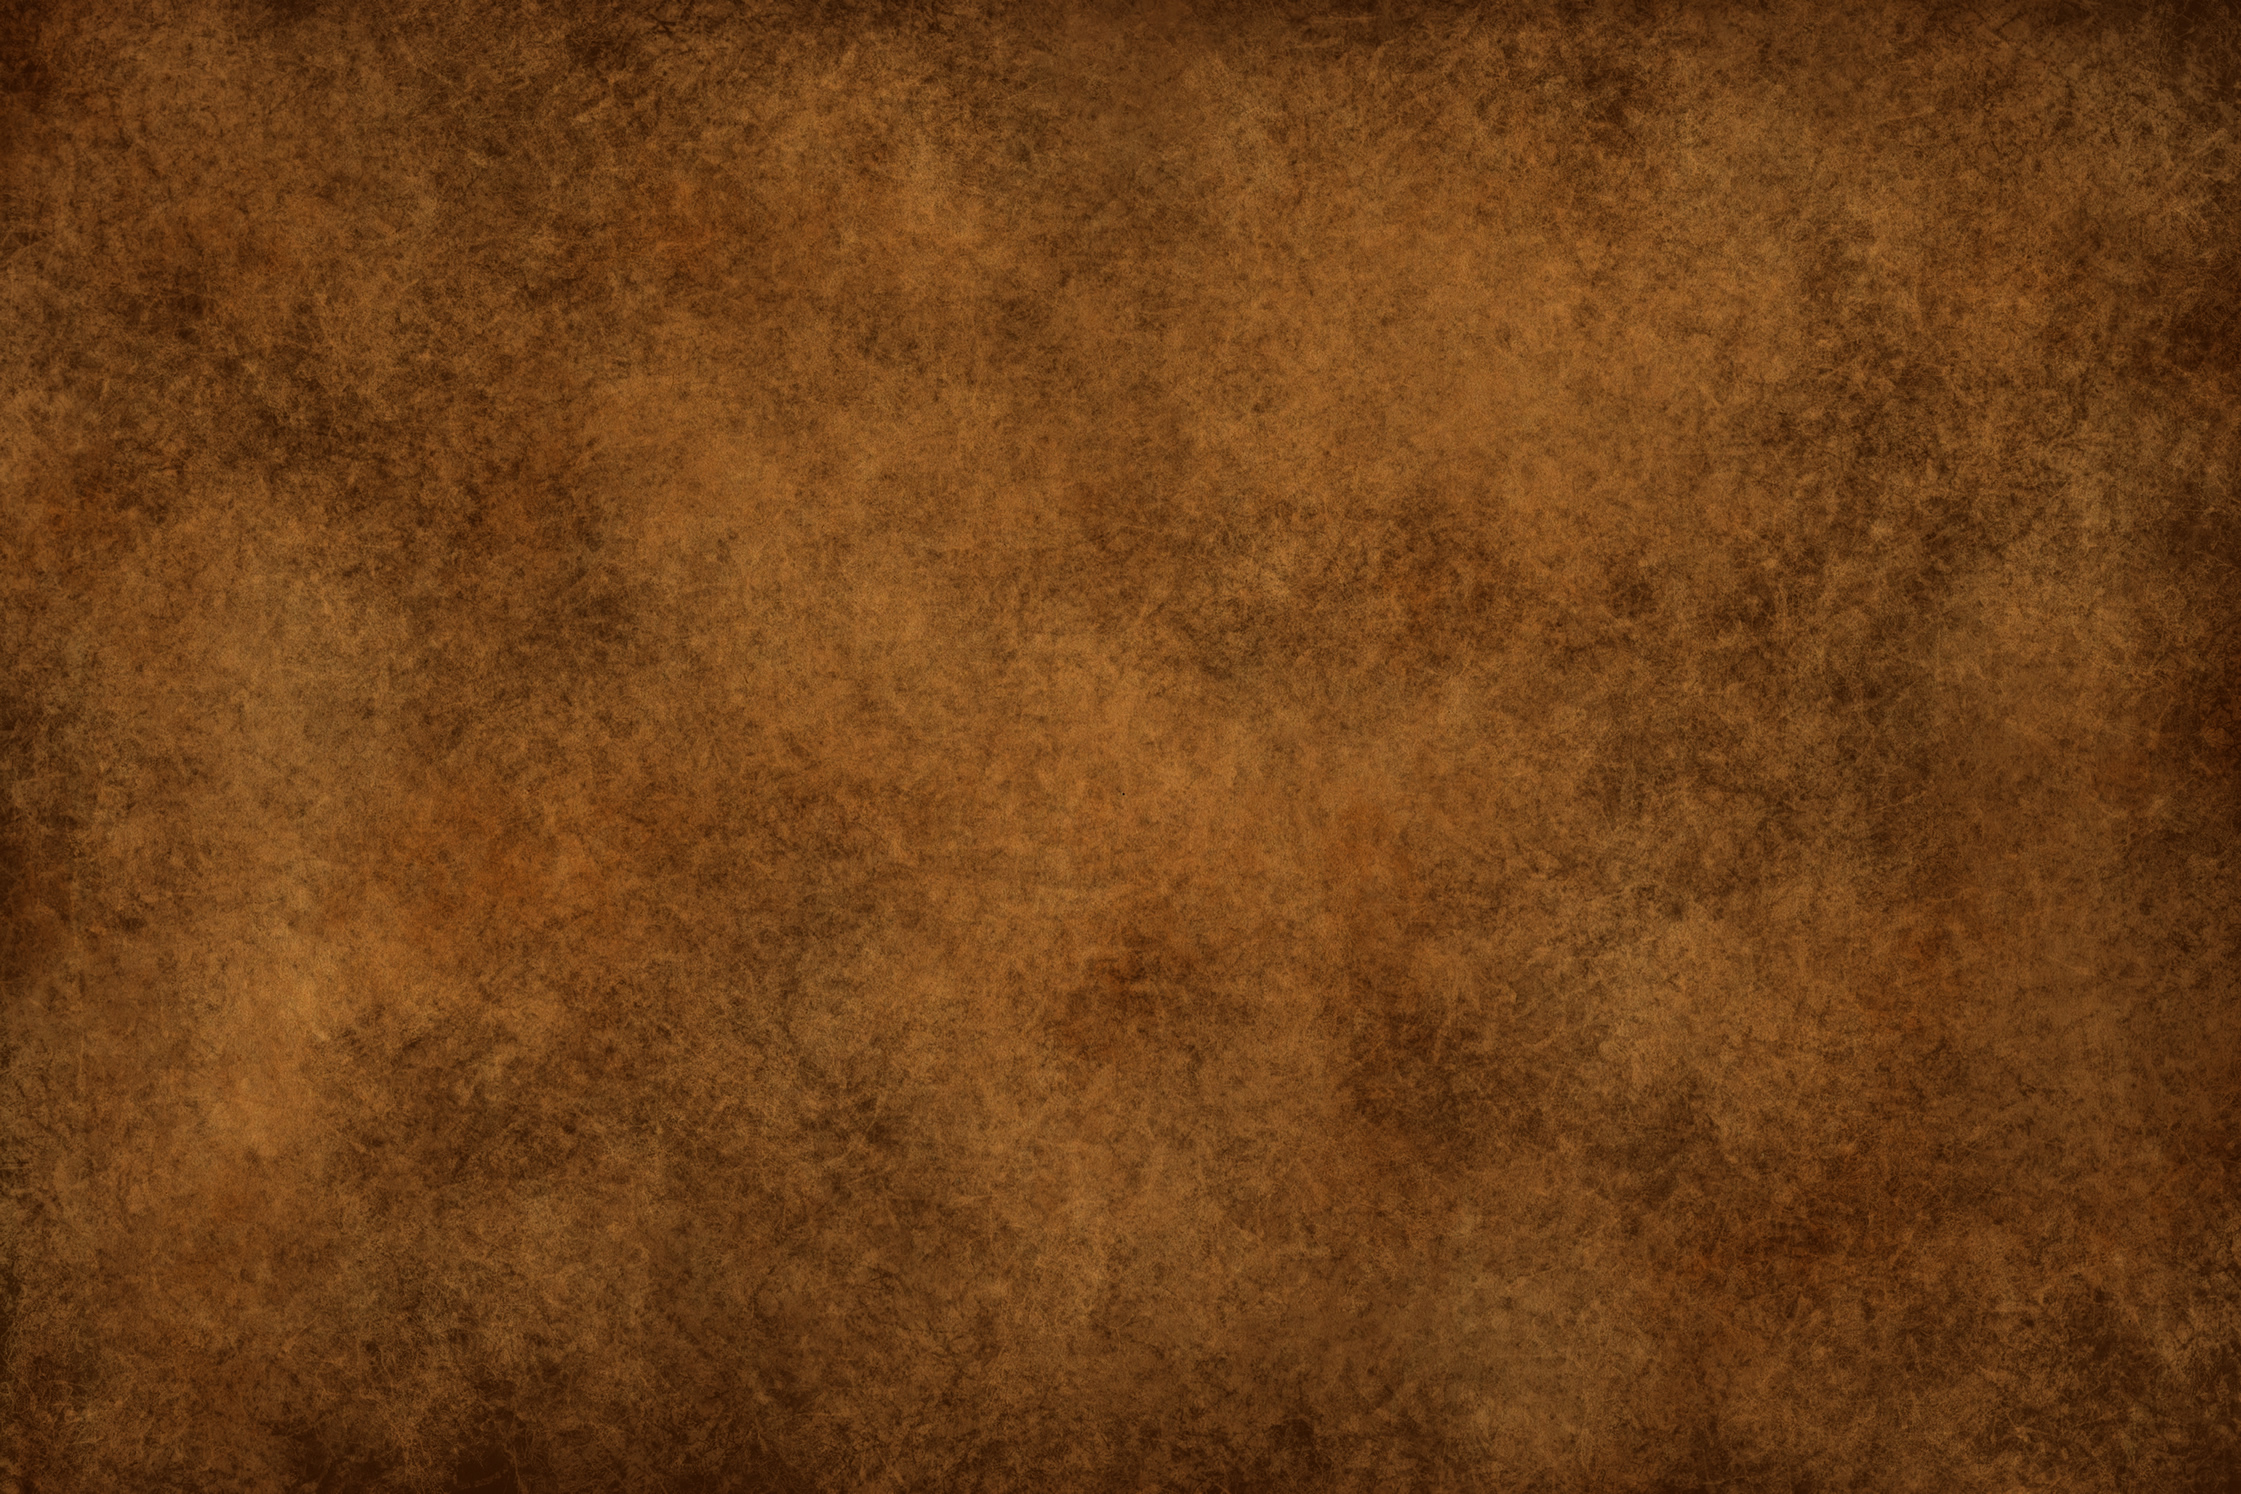 brown ragged old paper background texture download free